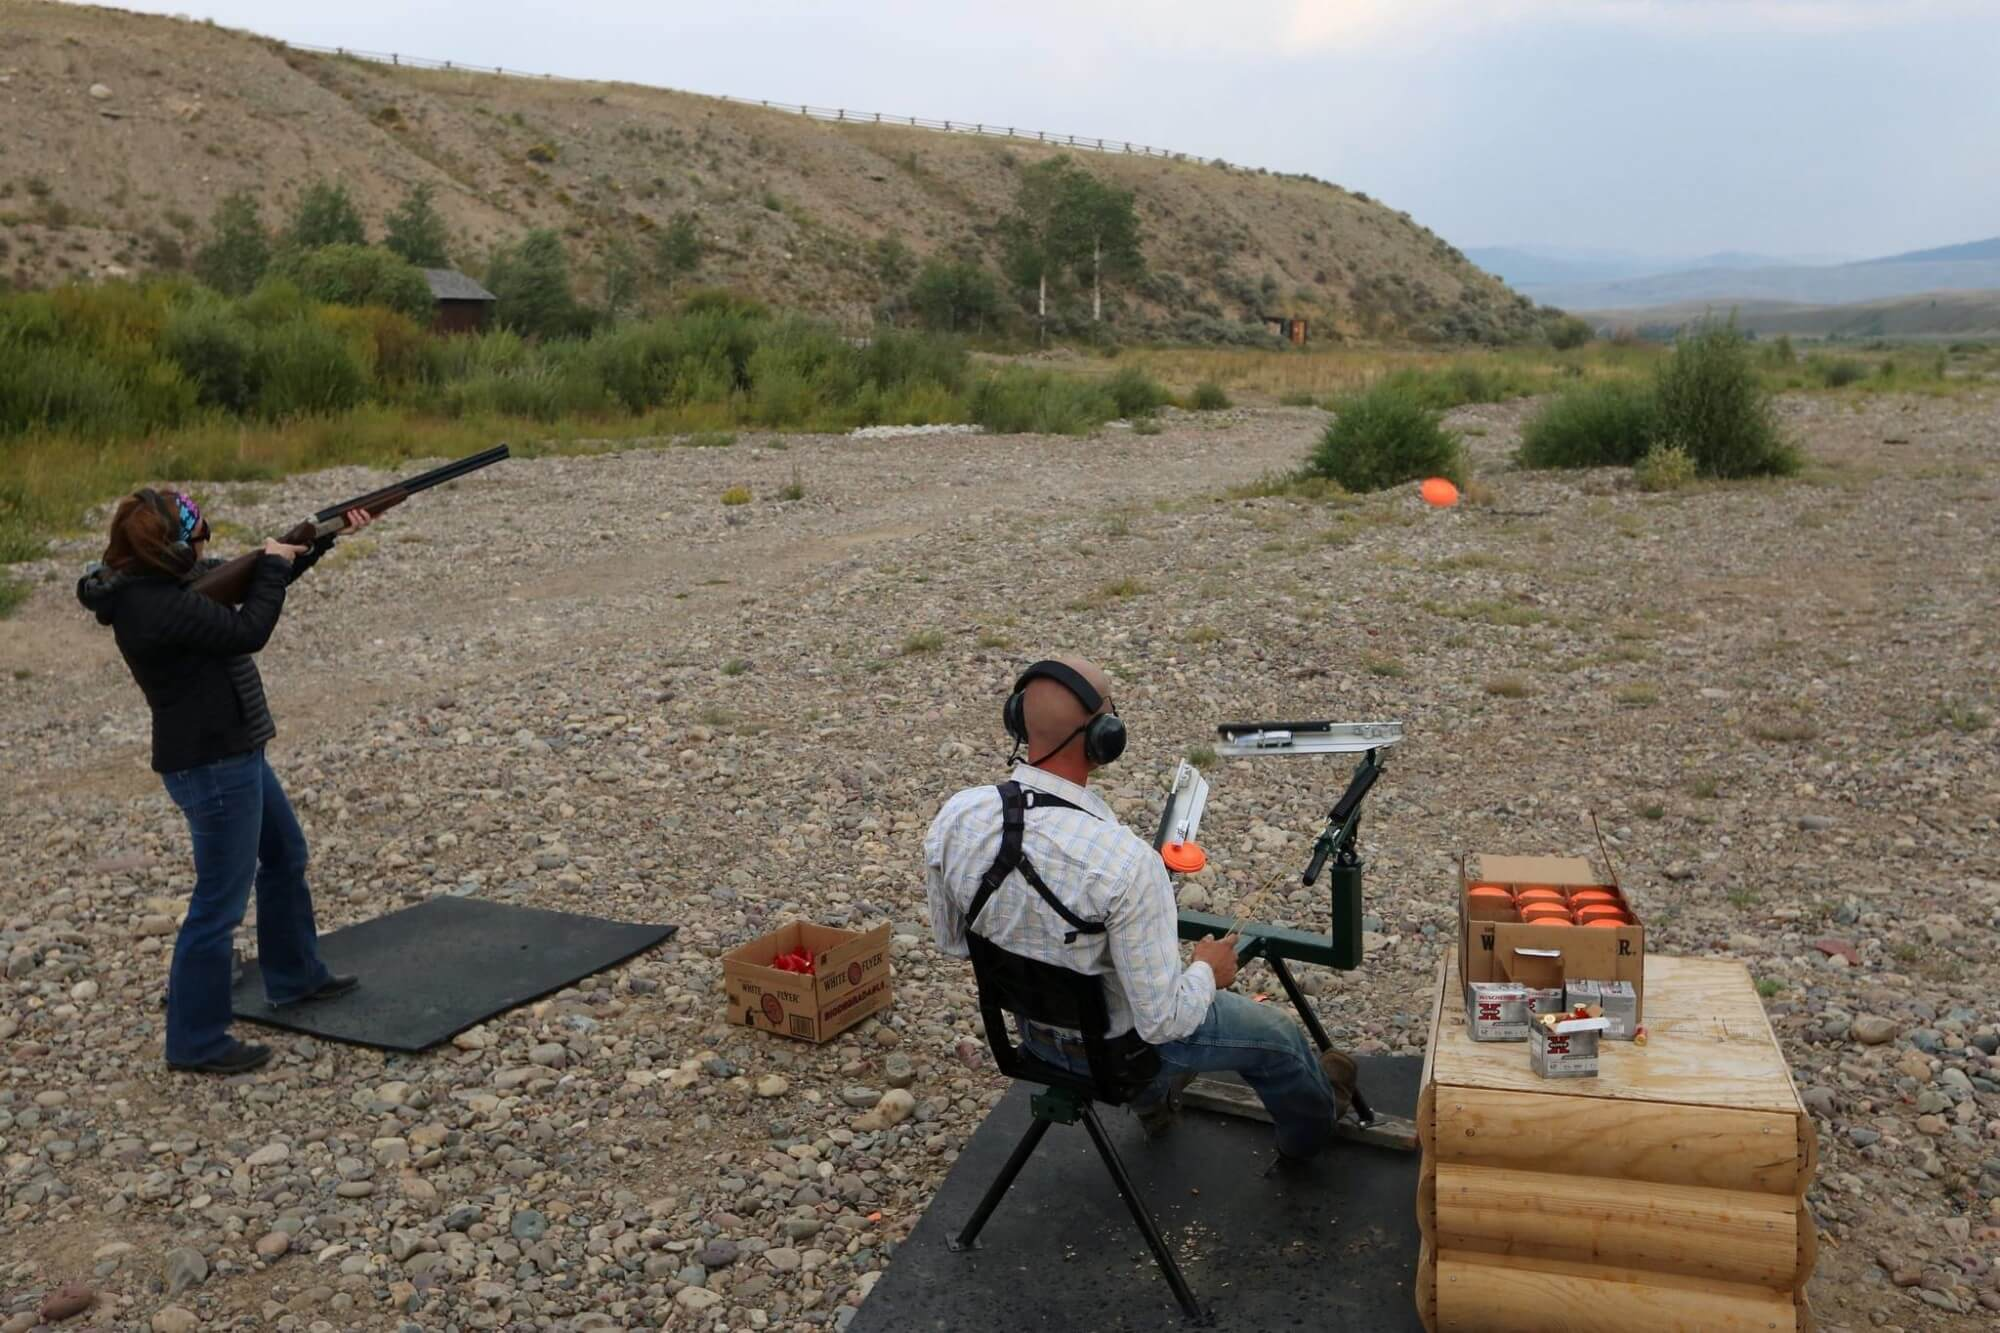 Jackson Hole family vacation at a dude ranch includes new activities like skeet shooting.